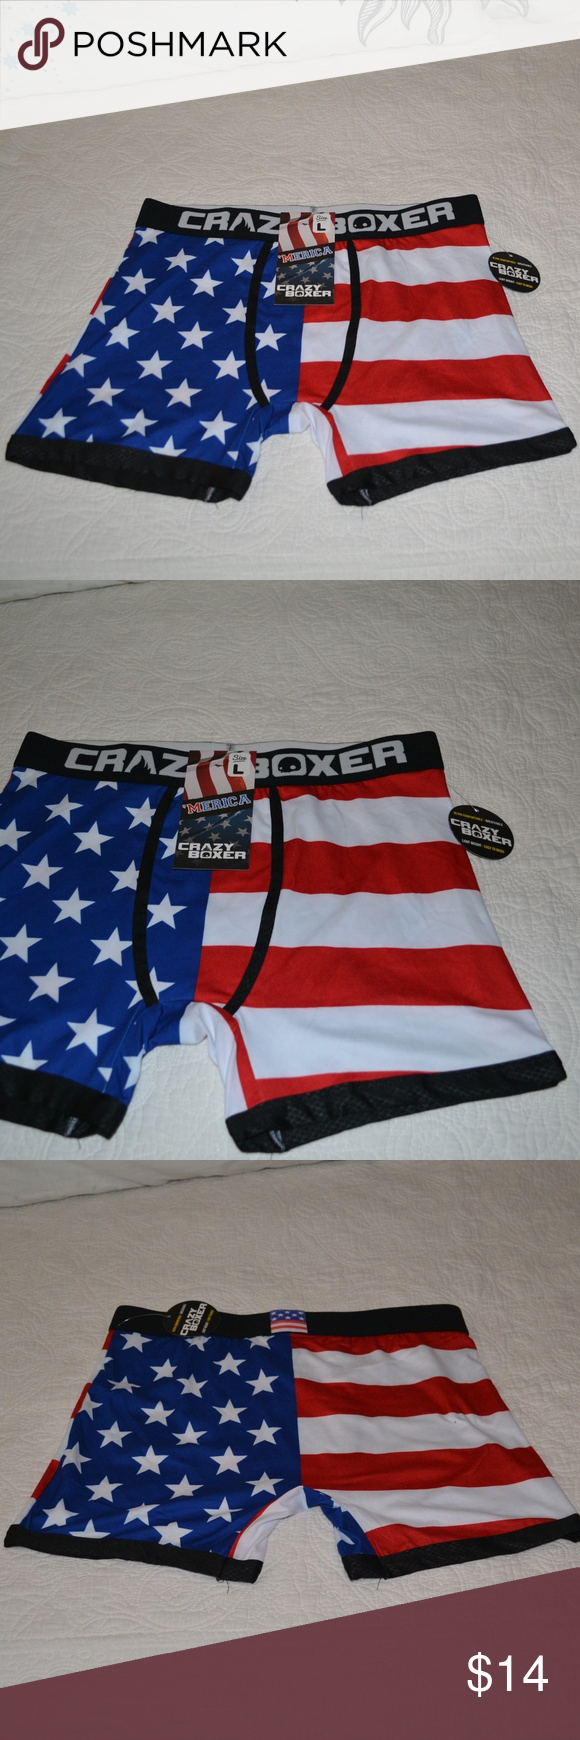 eae94008cb0 CRAZY BOXER American Flag Boxer Briefs L CRAZY BOXER Men s American Flag  Black Waist Boxer Briefs